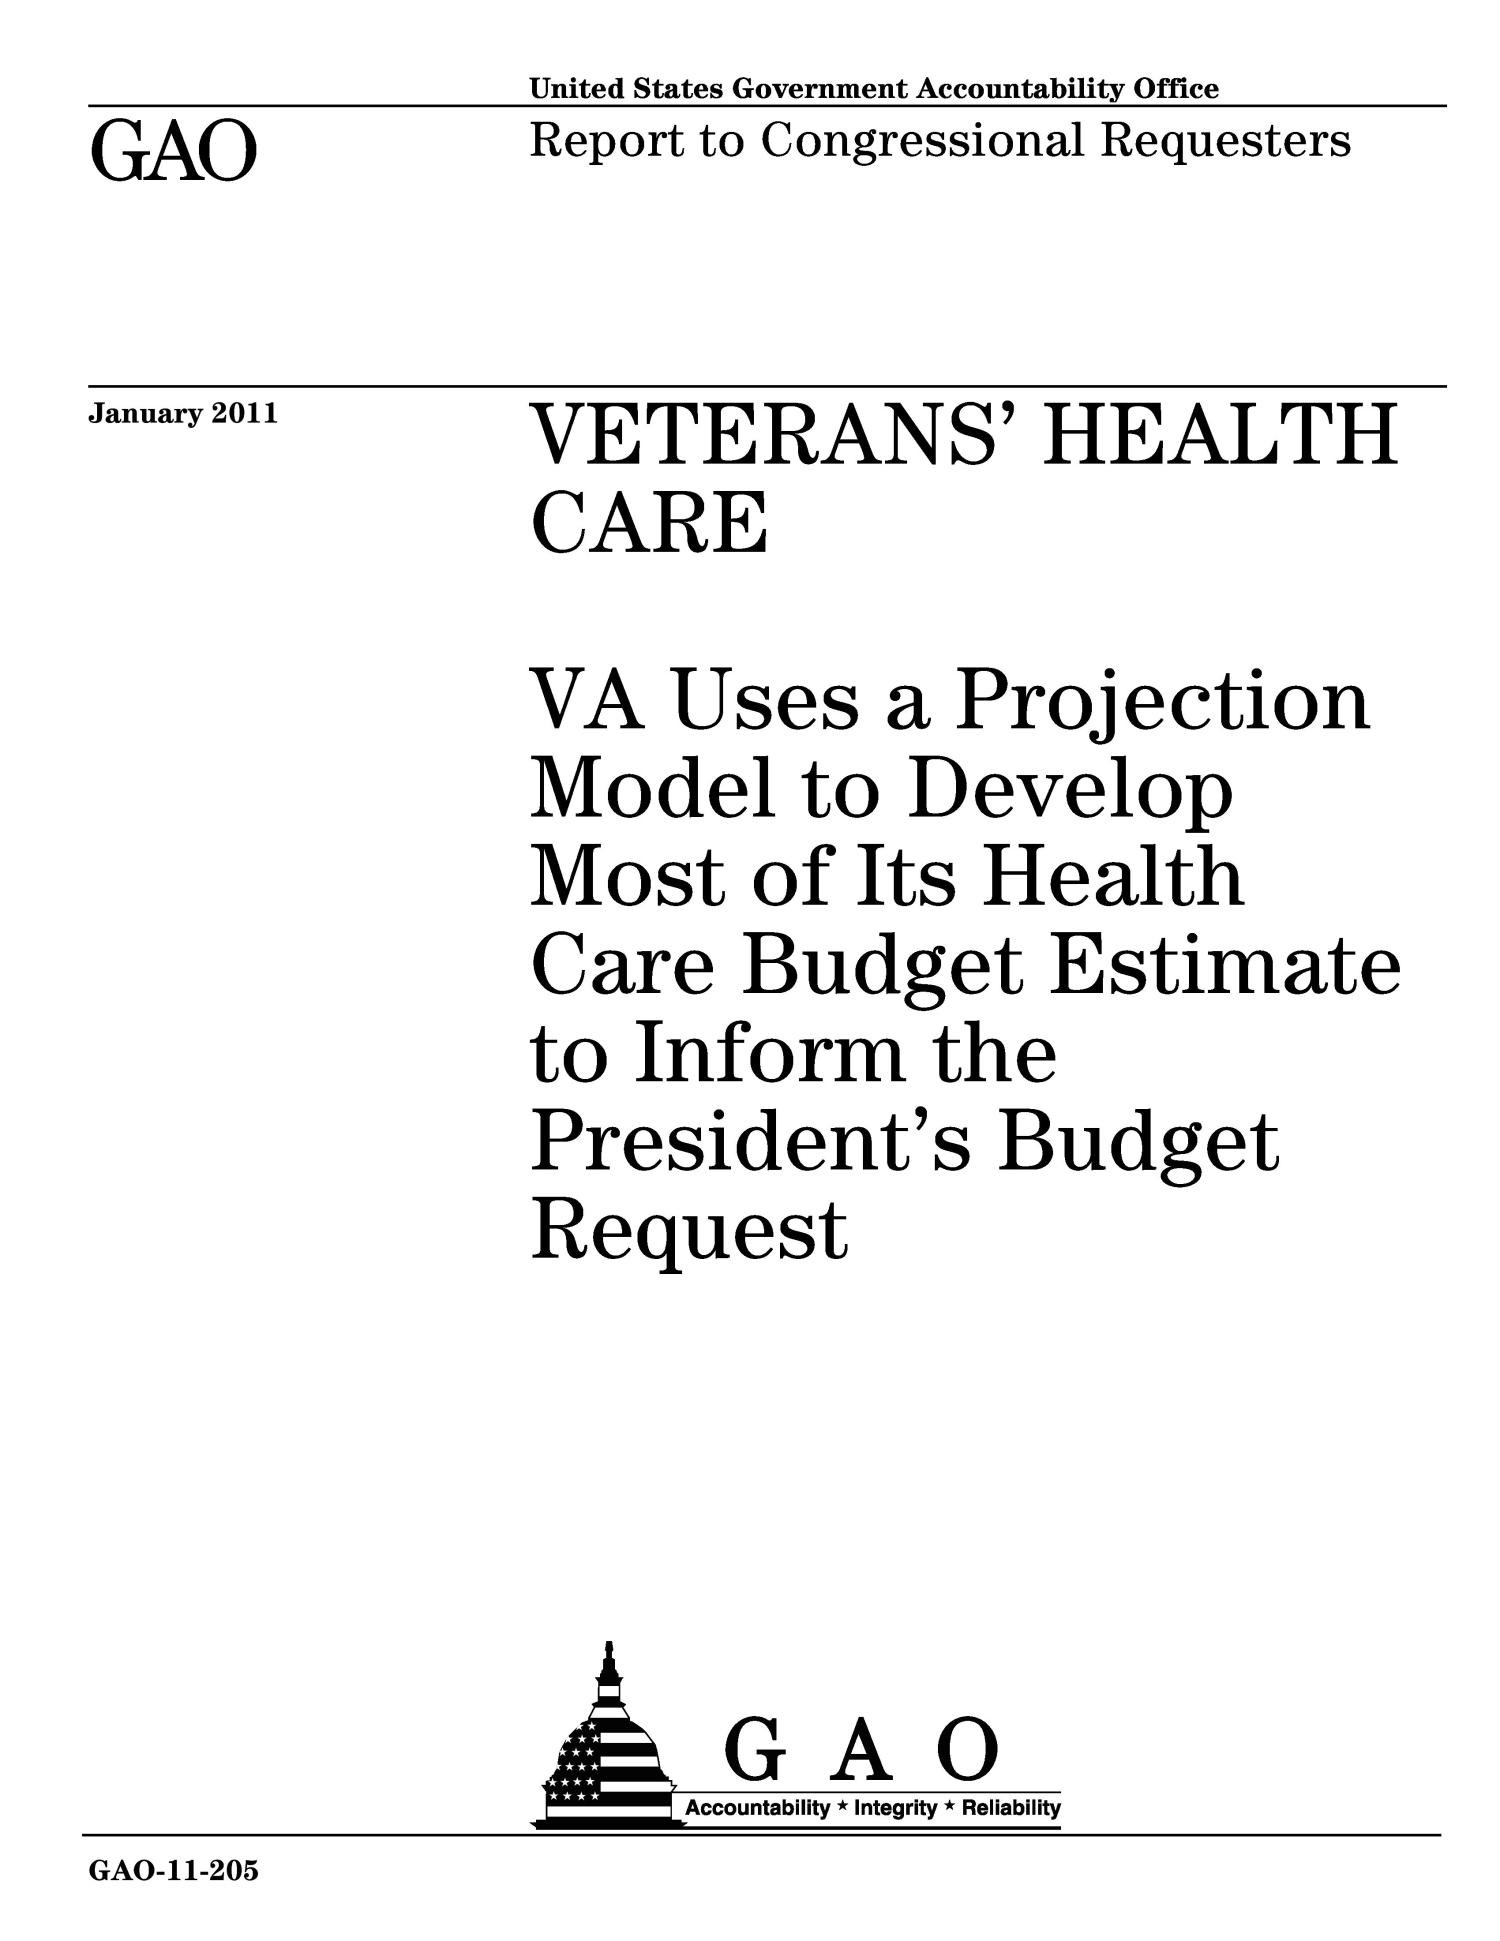 Veterans' Health Care: VA Uses a Projection Model to Develop Most of Its Health Care Budget Estimate to Inform the President's Budget Request                                                                                                      [Sequence #]: 1 of 36